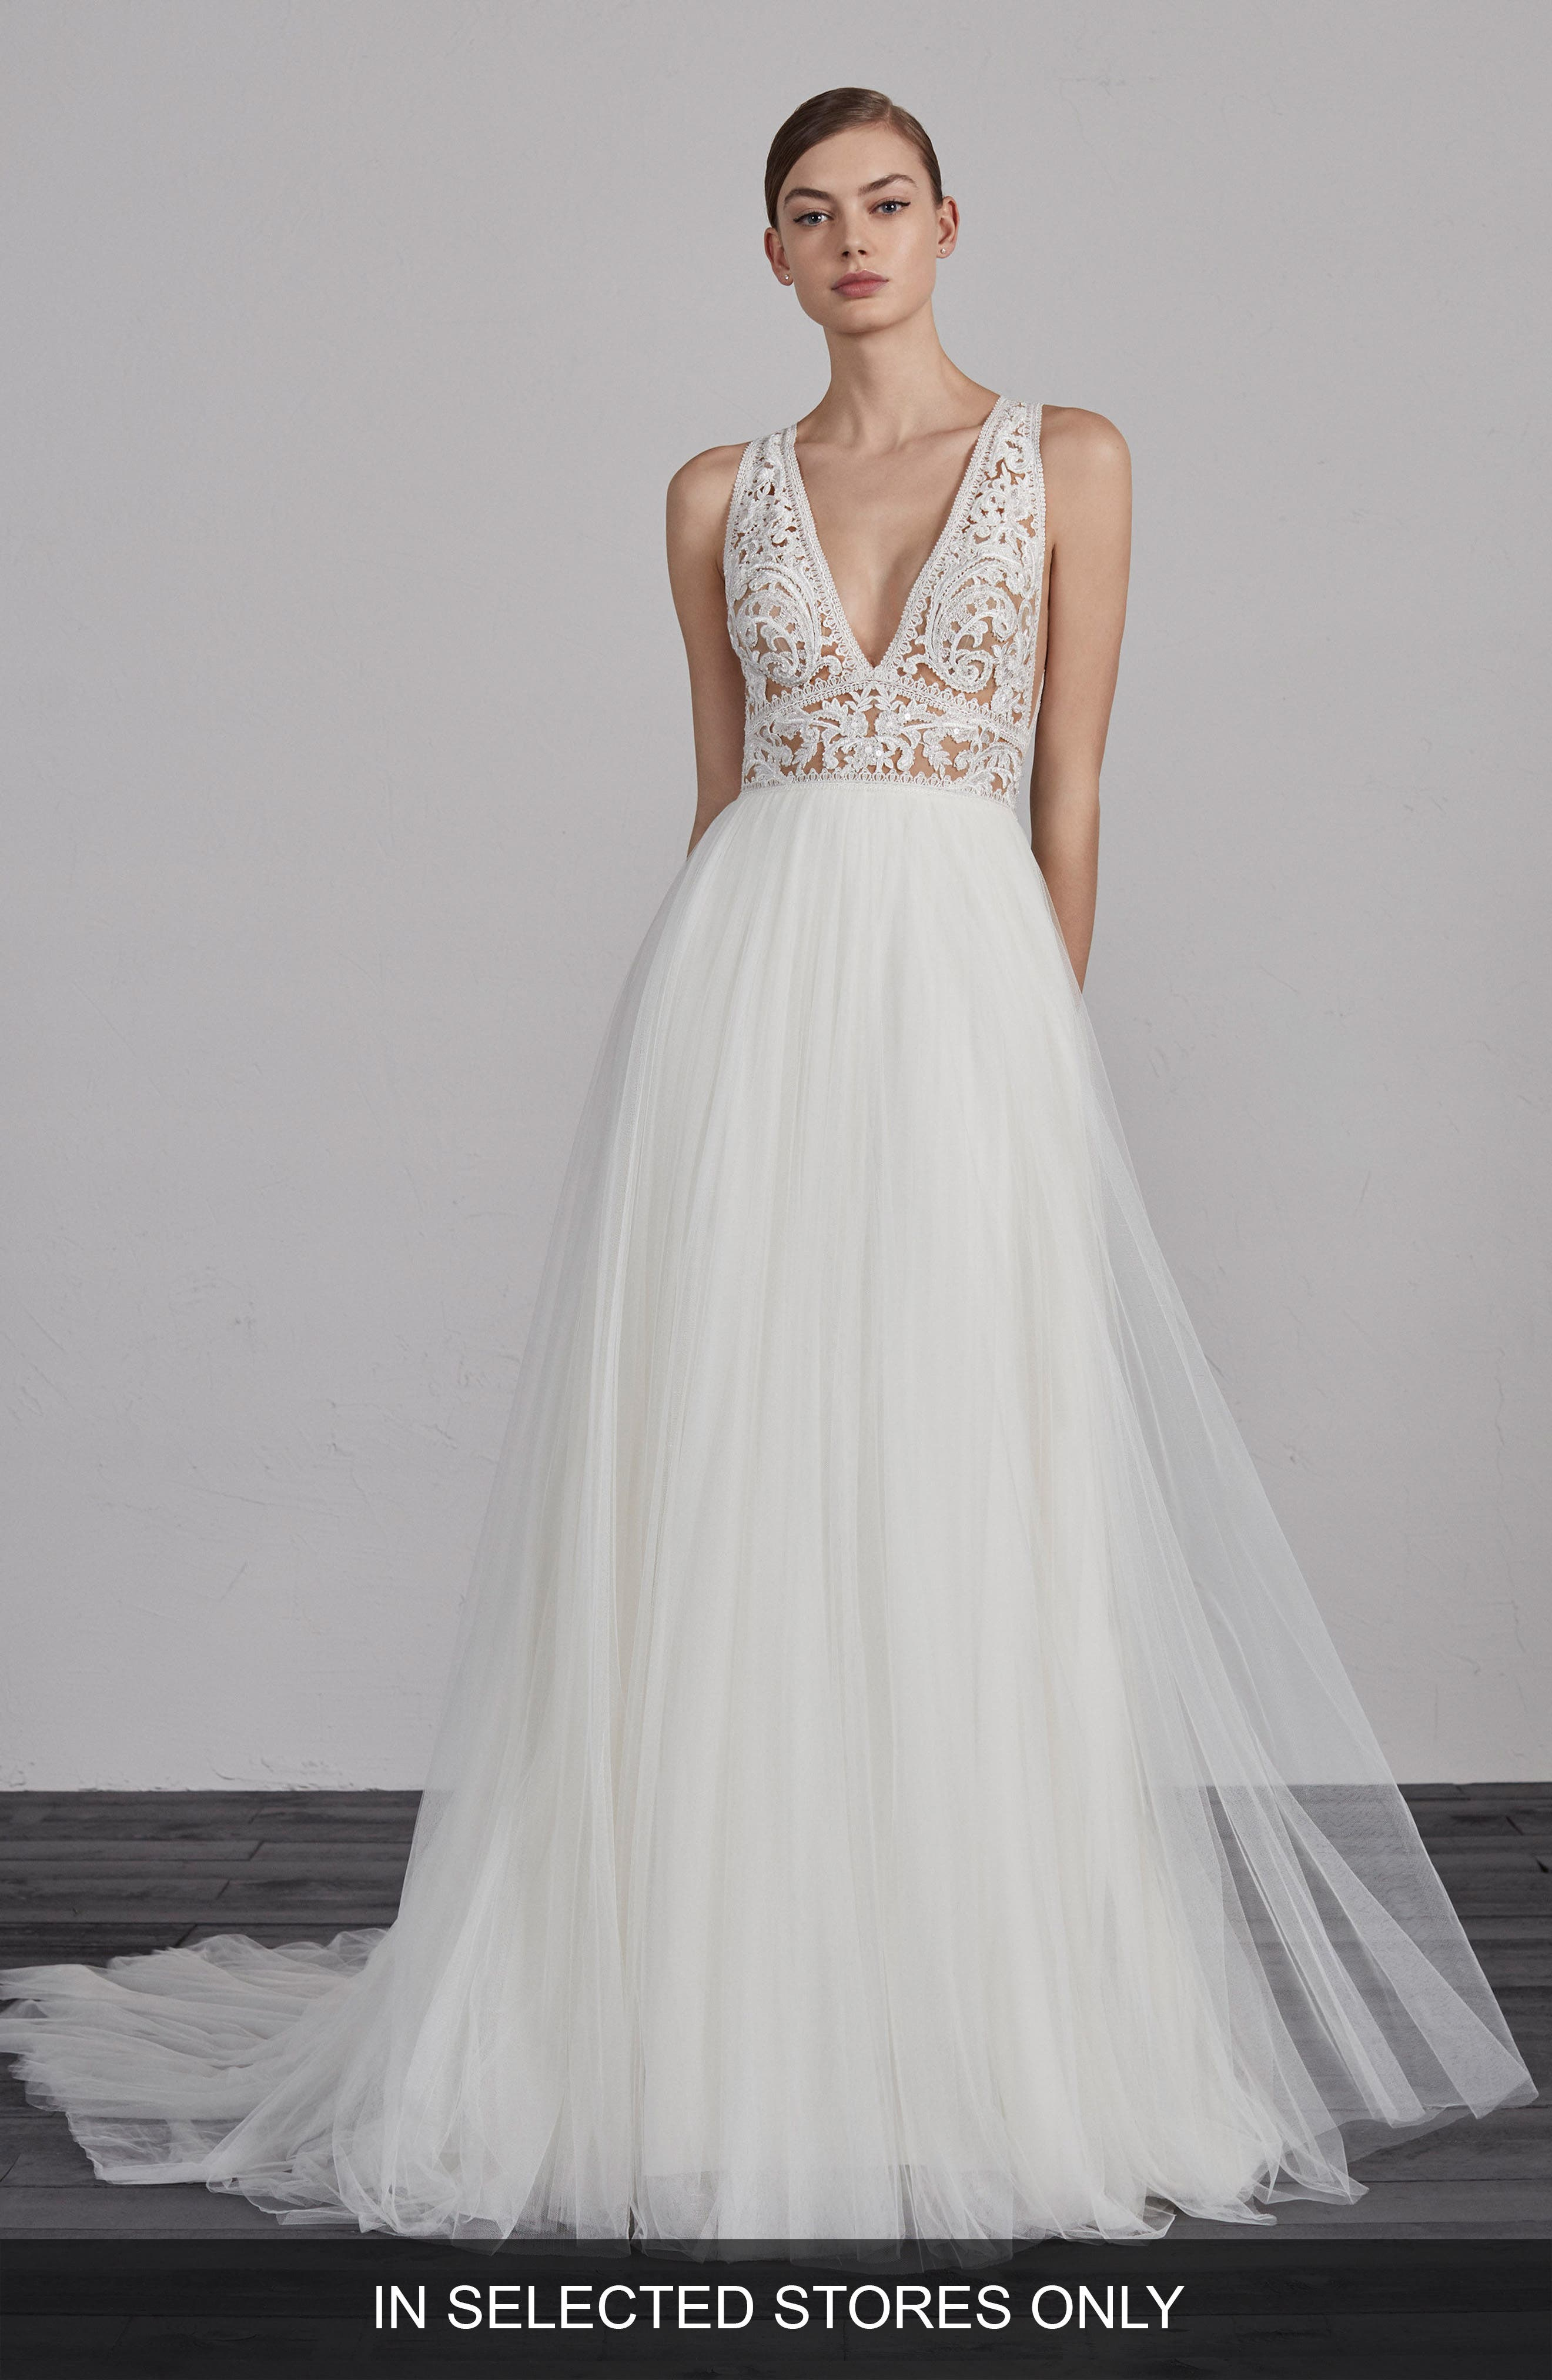 Espiga V-Neck Lace & Tulle Gown,                             Main thumbnail 1, color,                             Off White